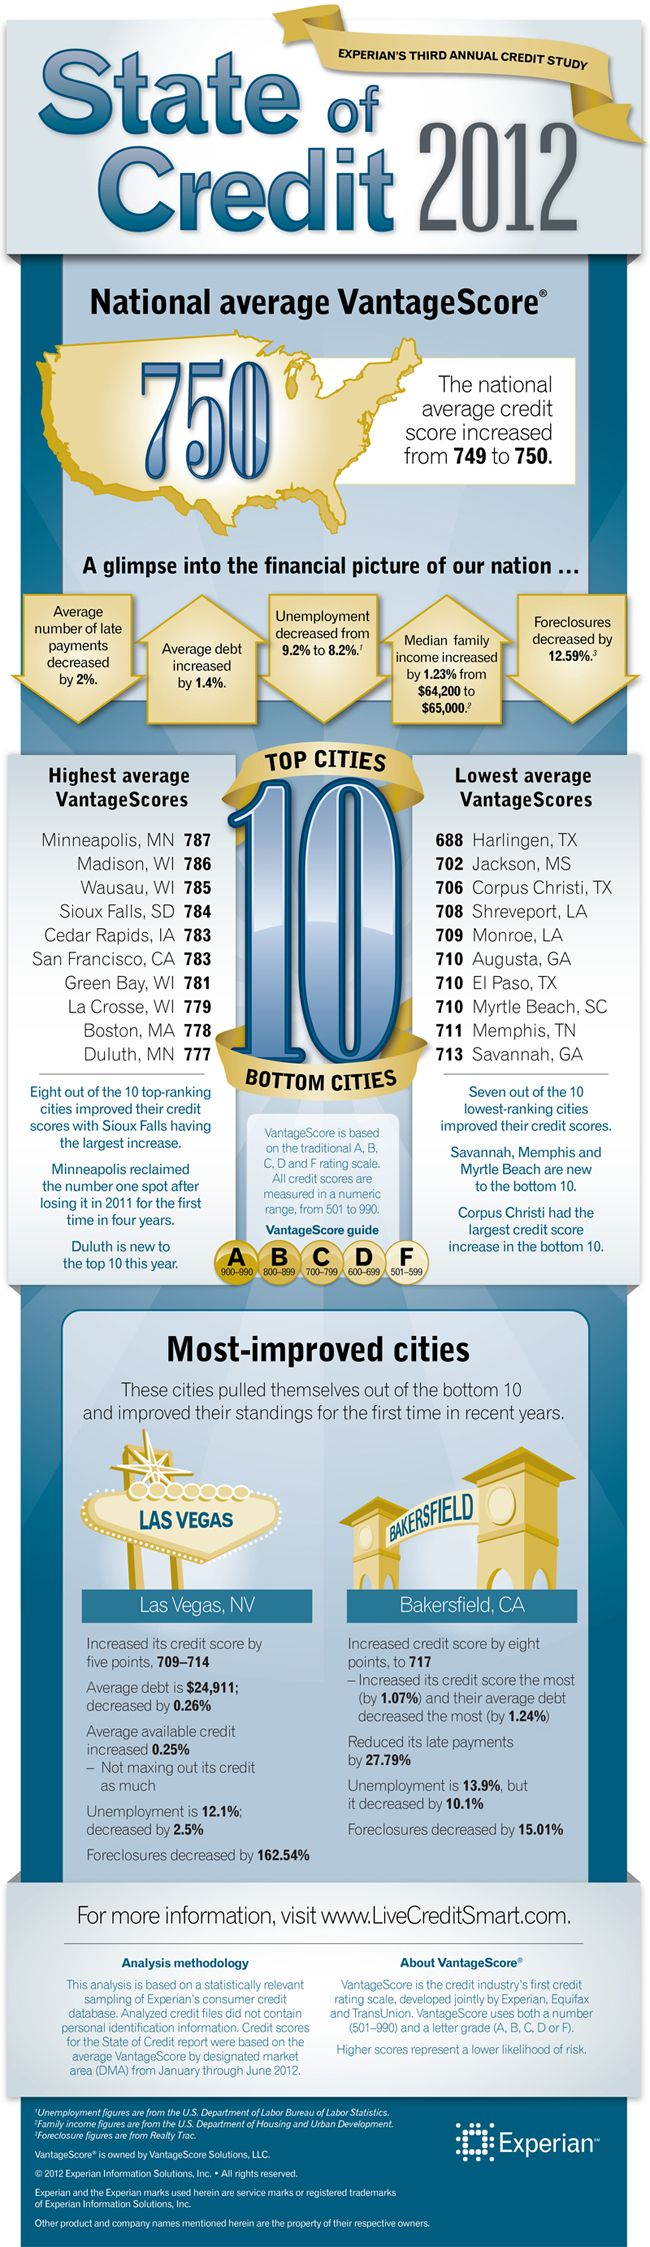 Cleveland drops to 44 on Experian's national ranking of credit scores. State of Credit 2012 gives a glimpse into the financial picture of our nation.